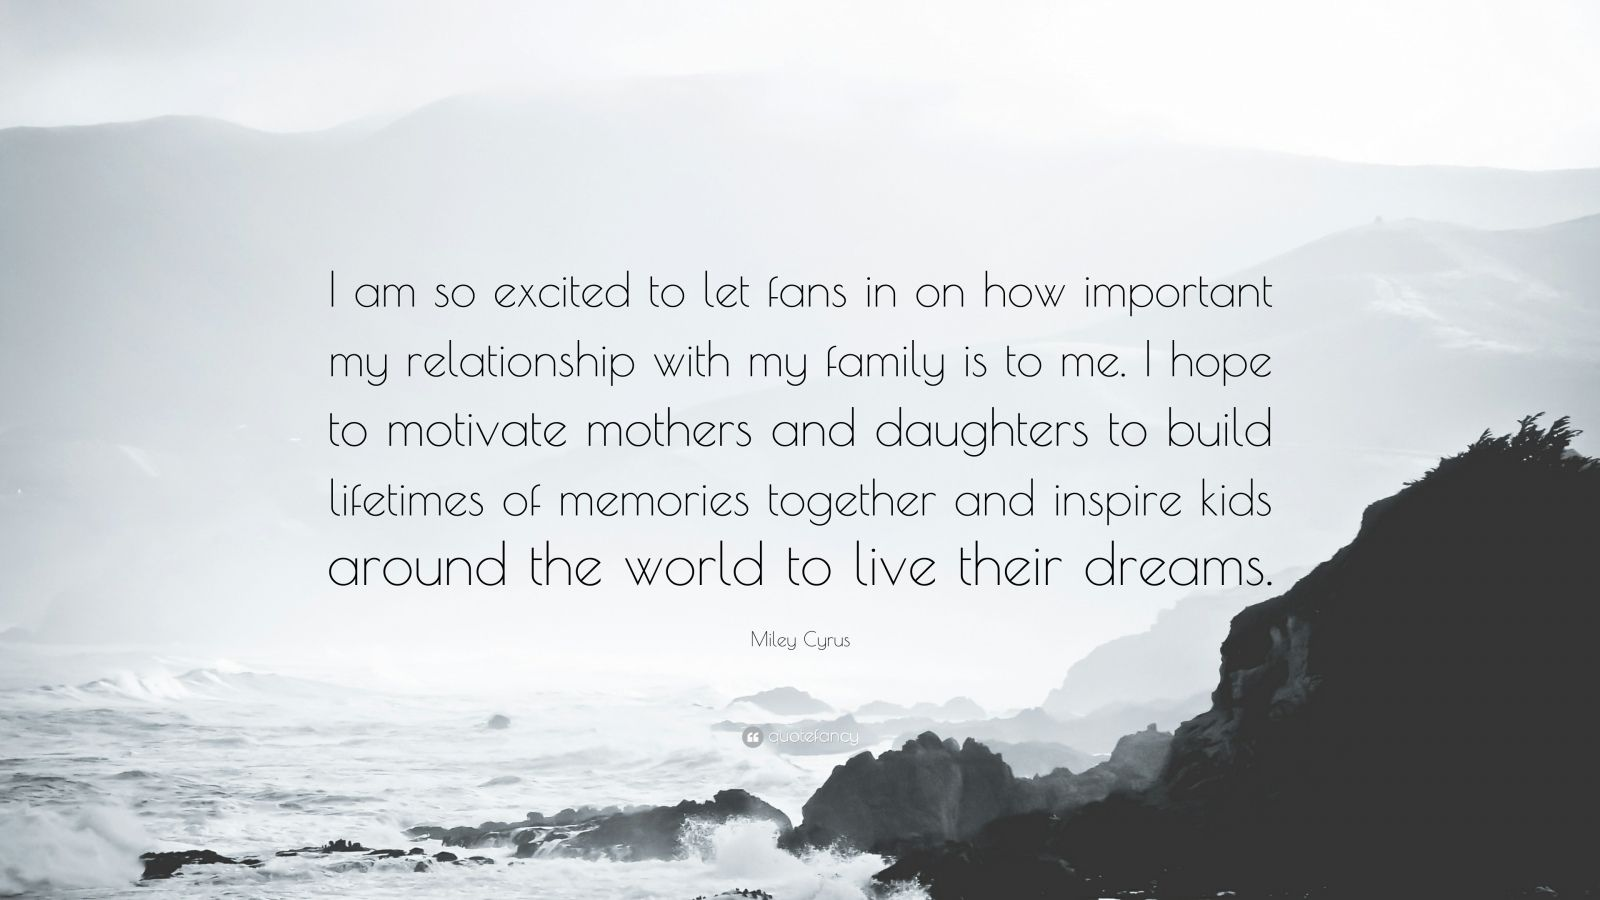 """Miley Cyrus Quote: """"I am so excited to let fans in on how important my relationship with my family is to me. I hope to motivate mothers and daughters to build lifetimes of memories together and inspire kids around the world to live their dreams."""""""